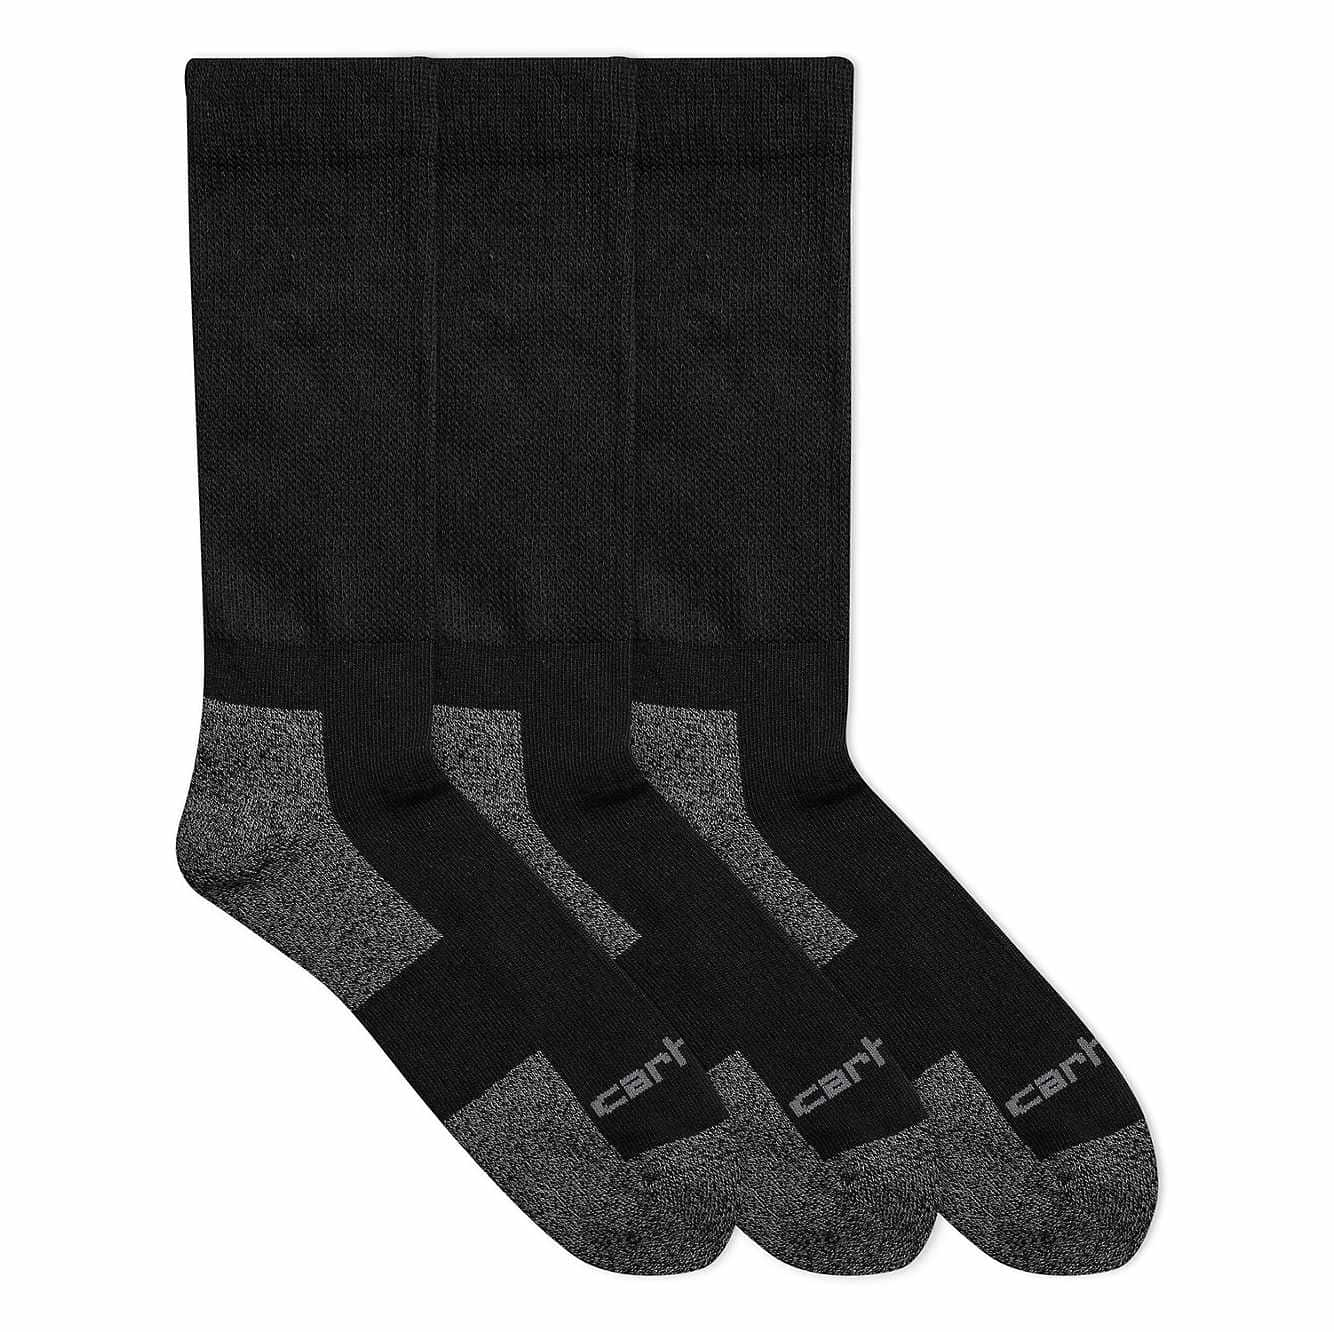 Picture of All-Season Comfort Stretch Crew Sock 3 pack in Black